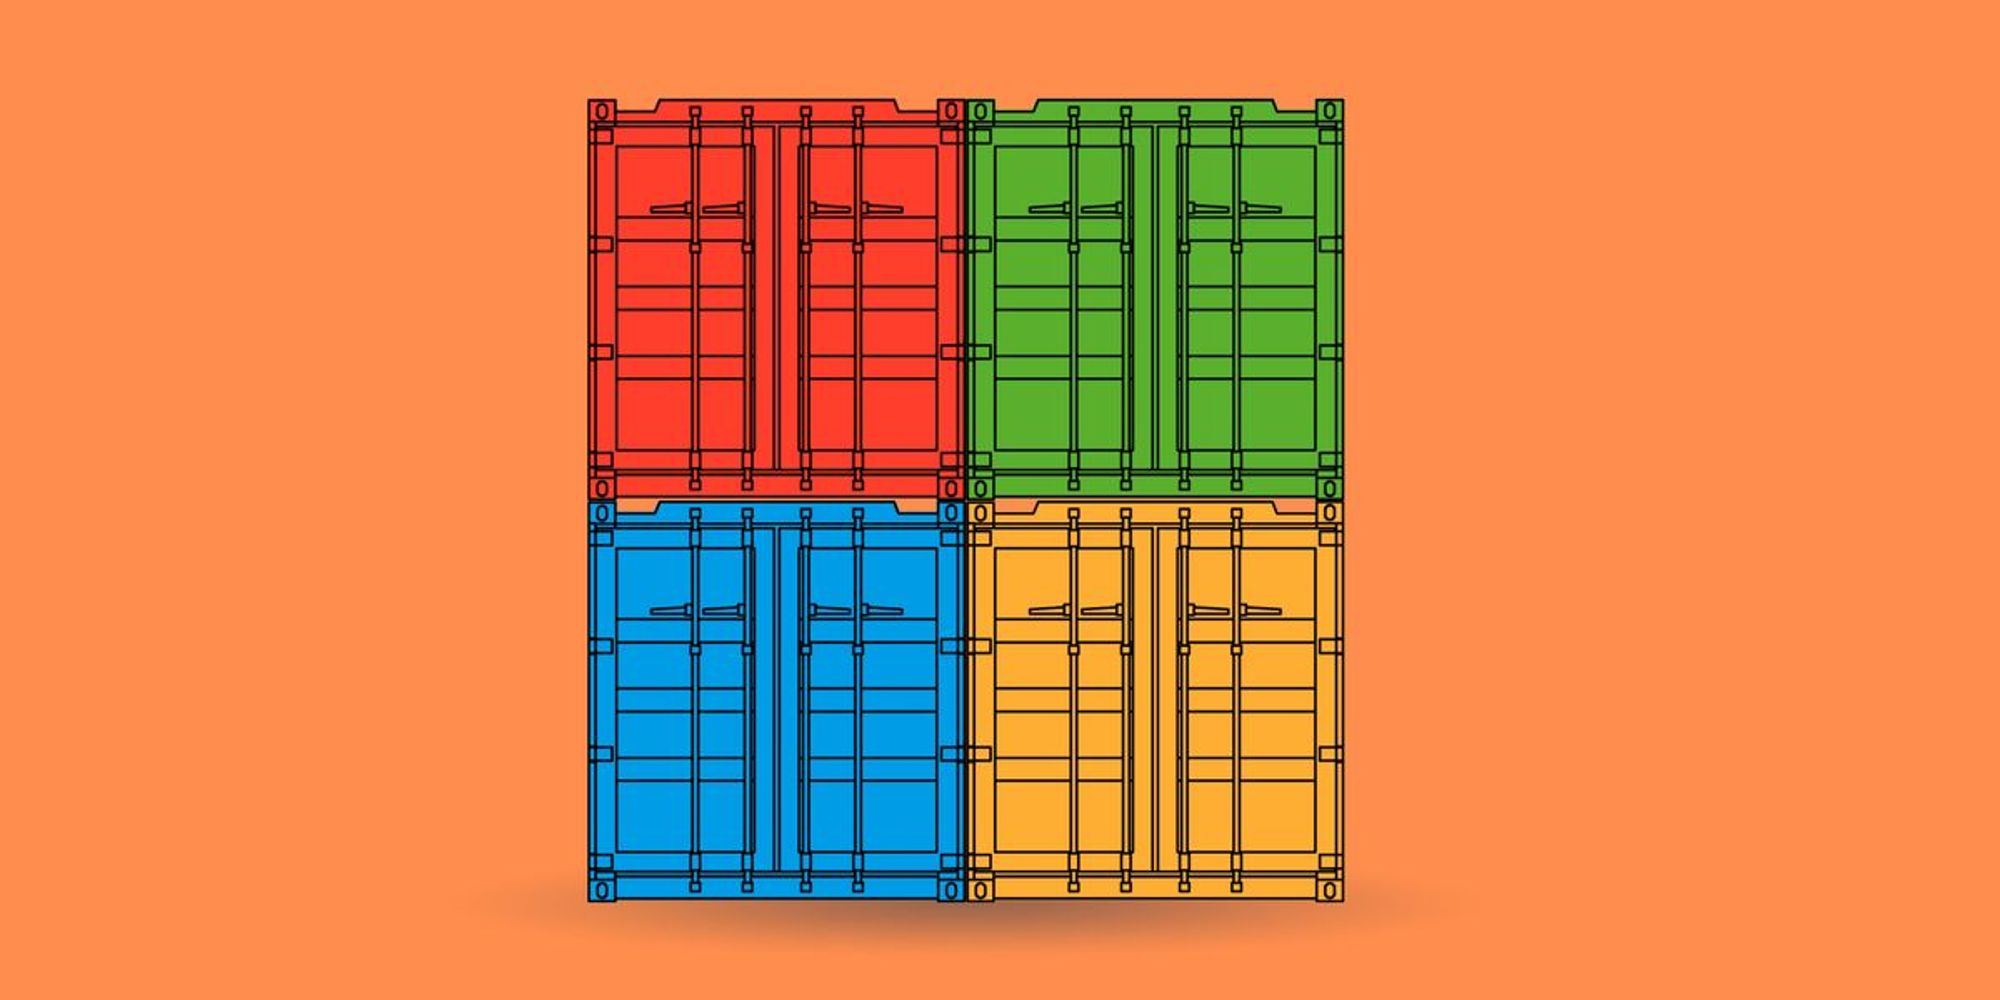 Microsoft is putting server rooms in shipping containers